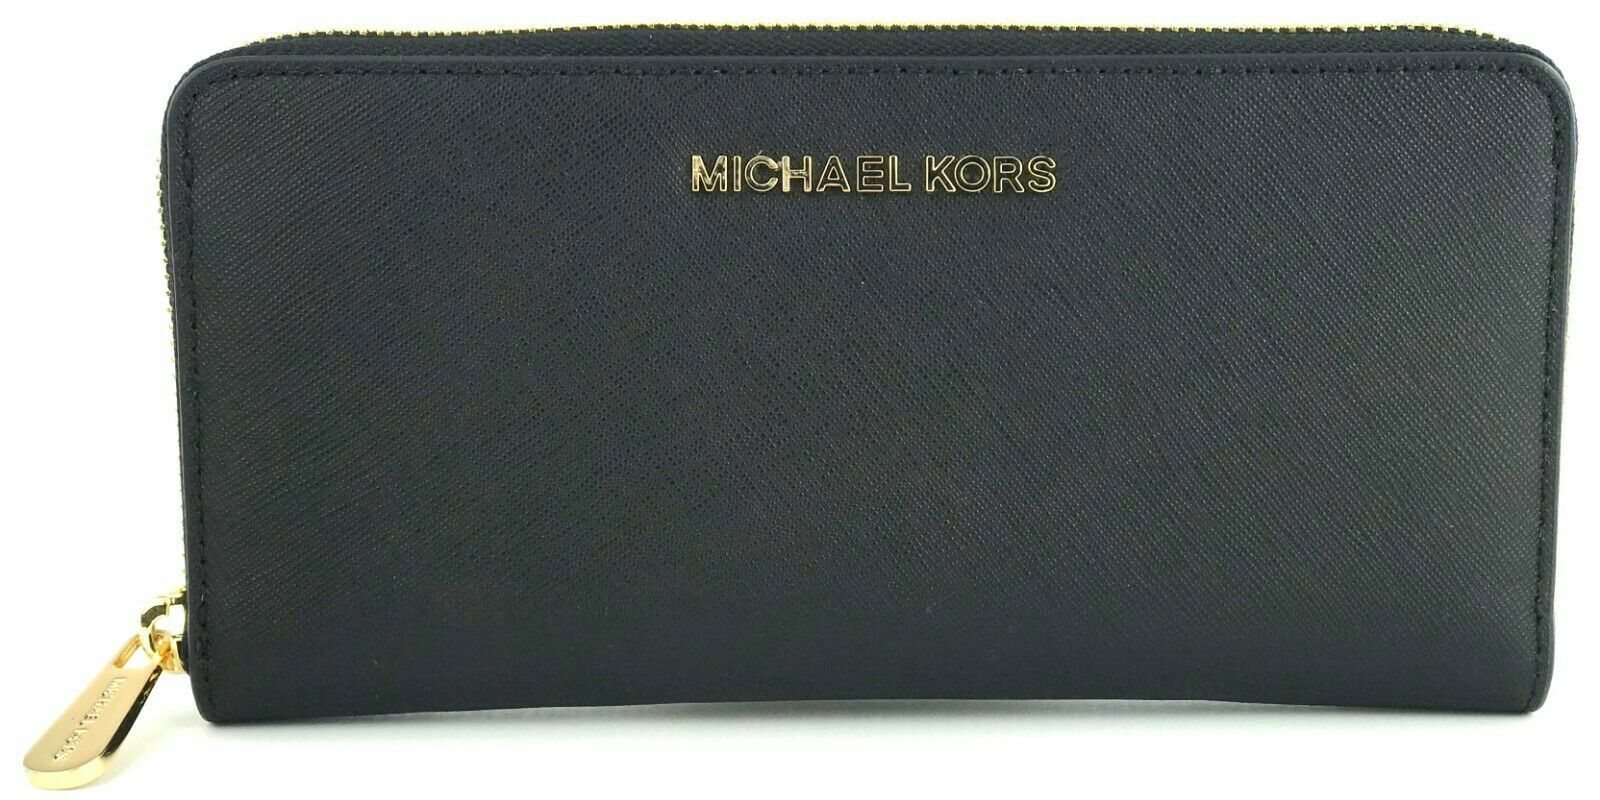 Primary image for Michael Kors Purse Zip Around Wallet Black Large Saffiano Leather RRP £170